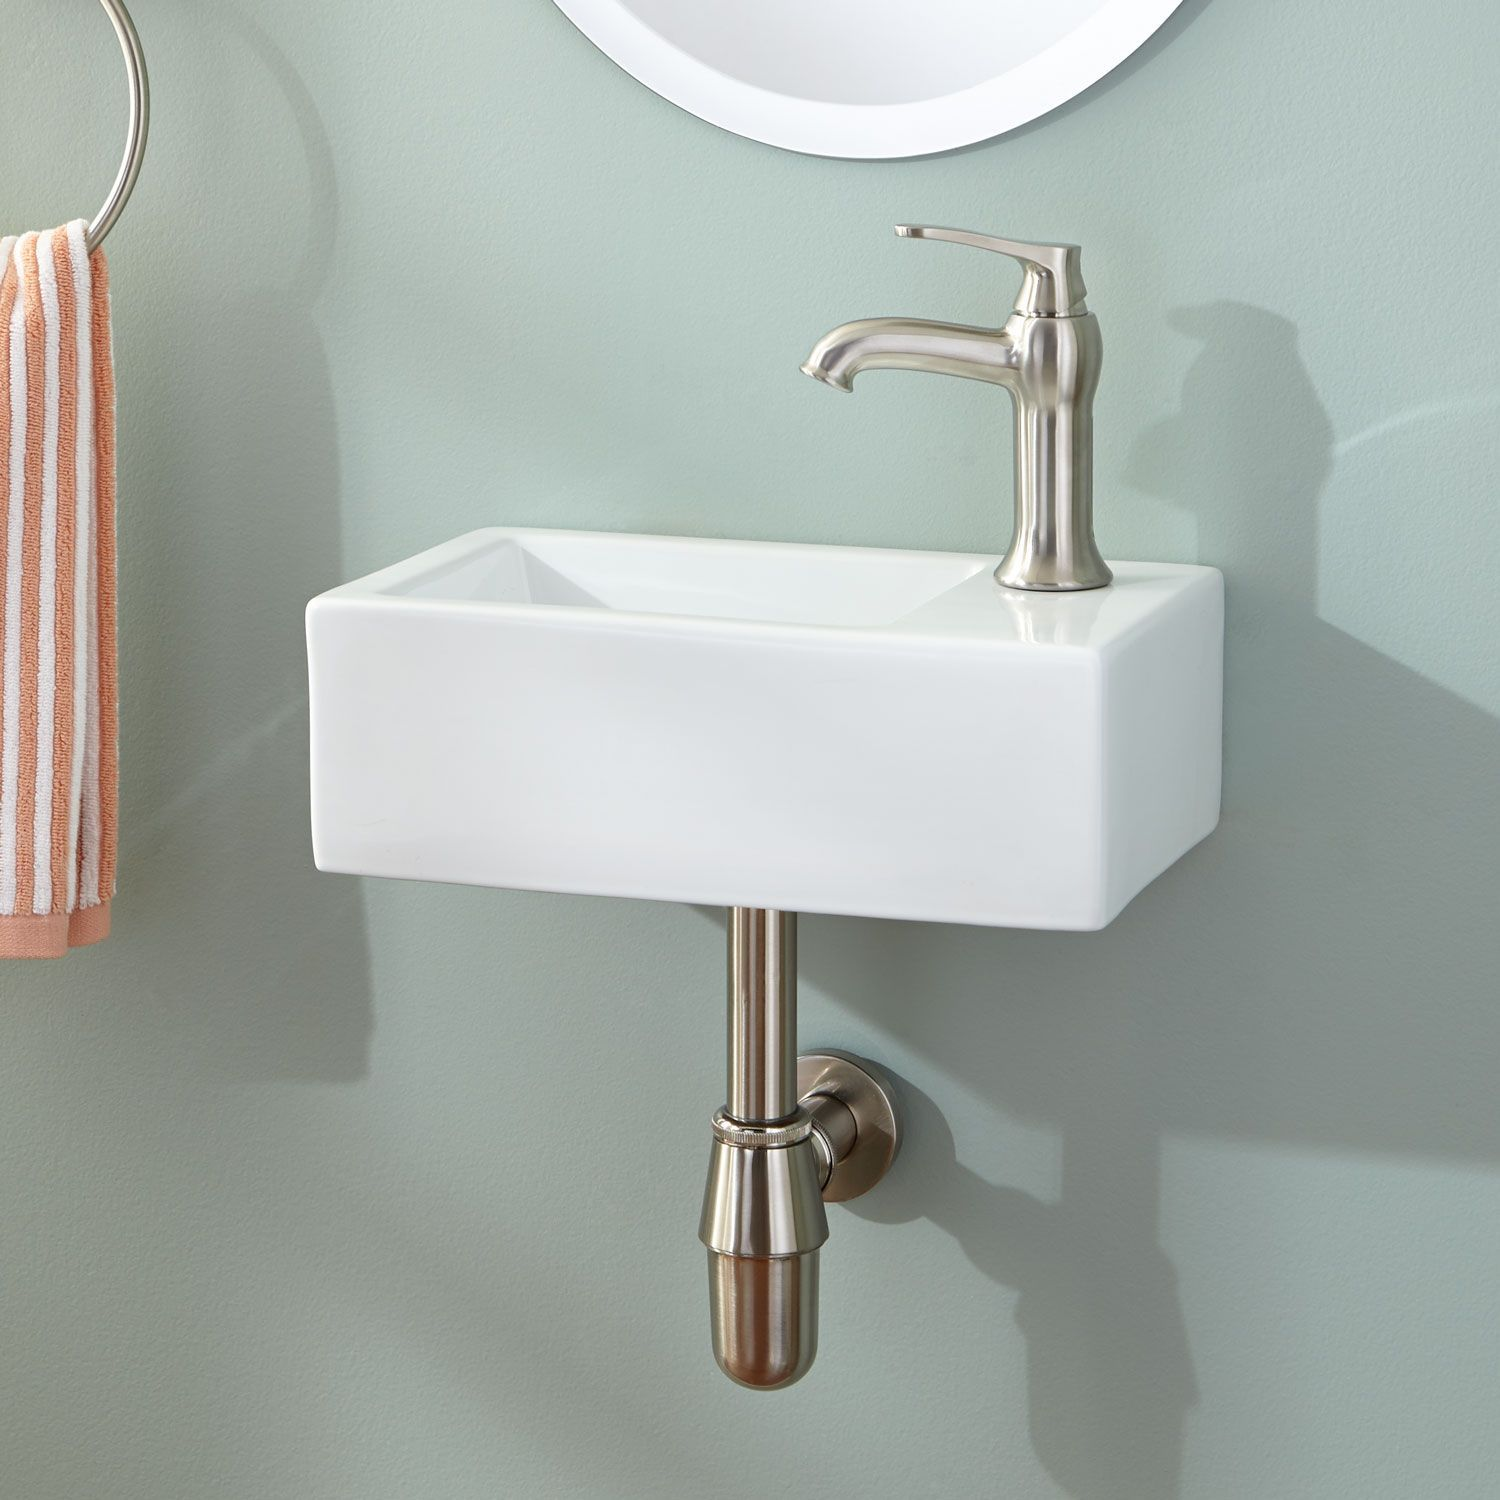 Corrie Mini Porcelain Wall Mount Bathroom Sink